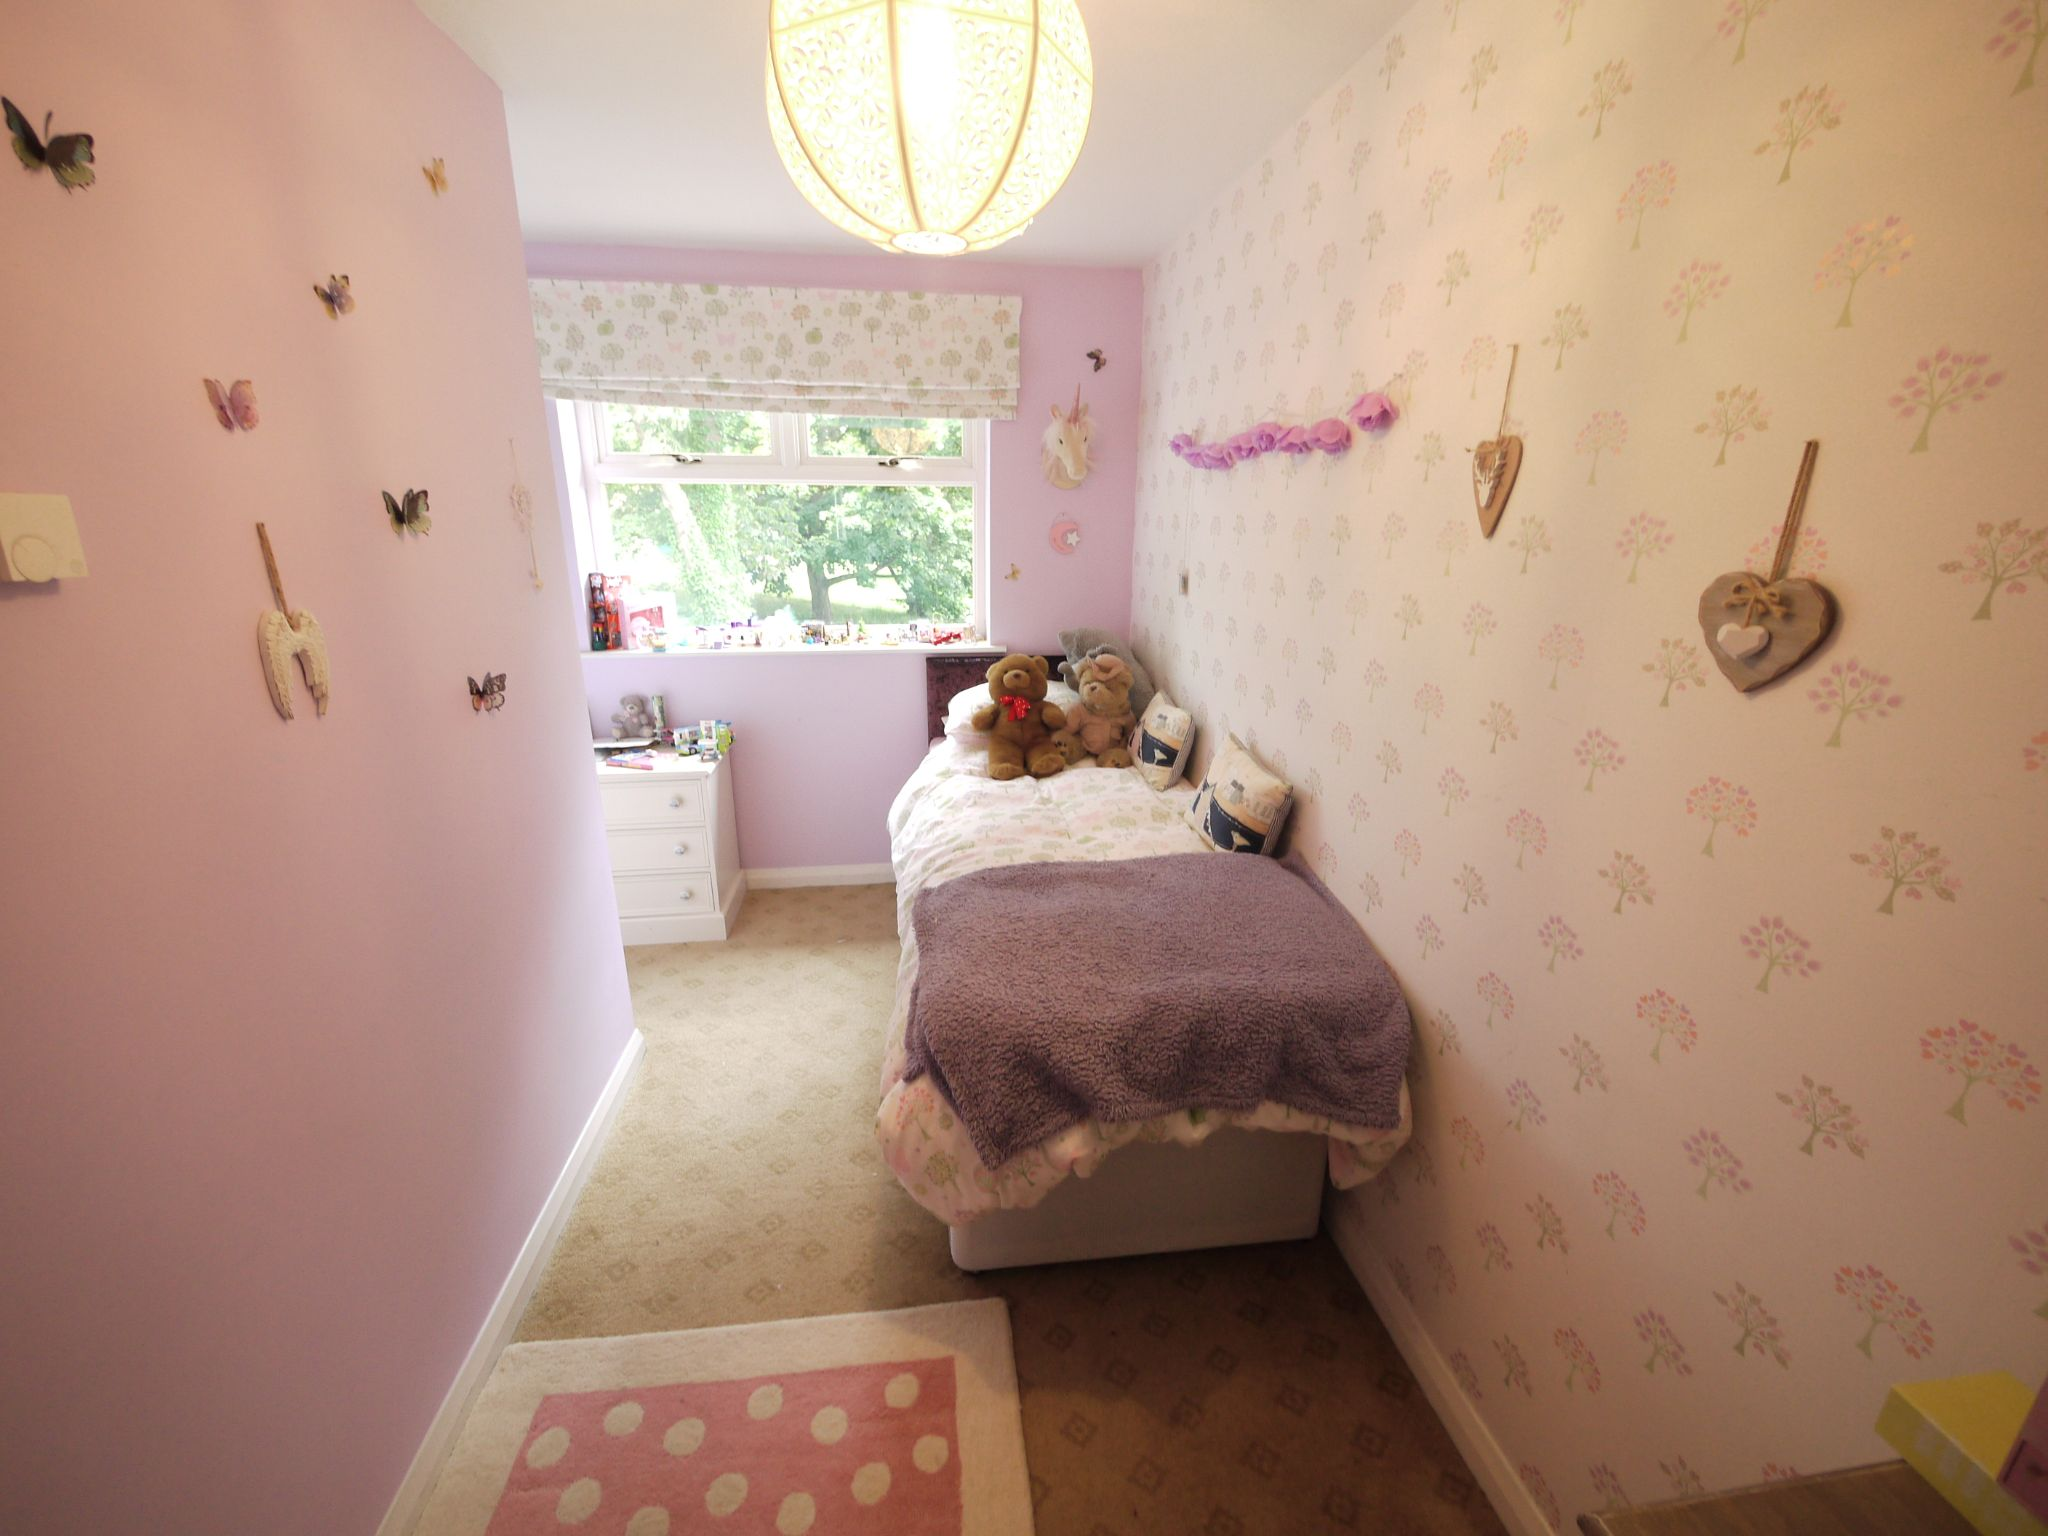 4 bedroom detached house For Sale in Brighouse - Bedroom 4.